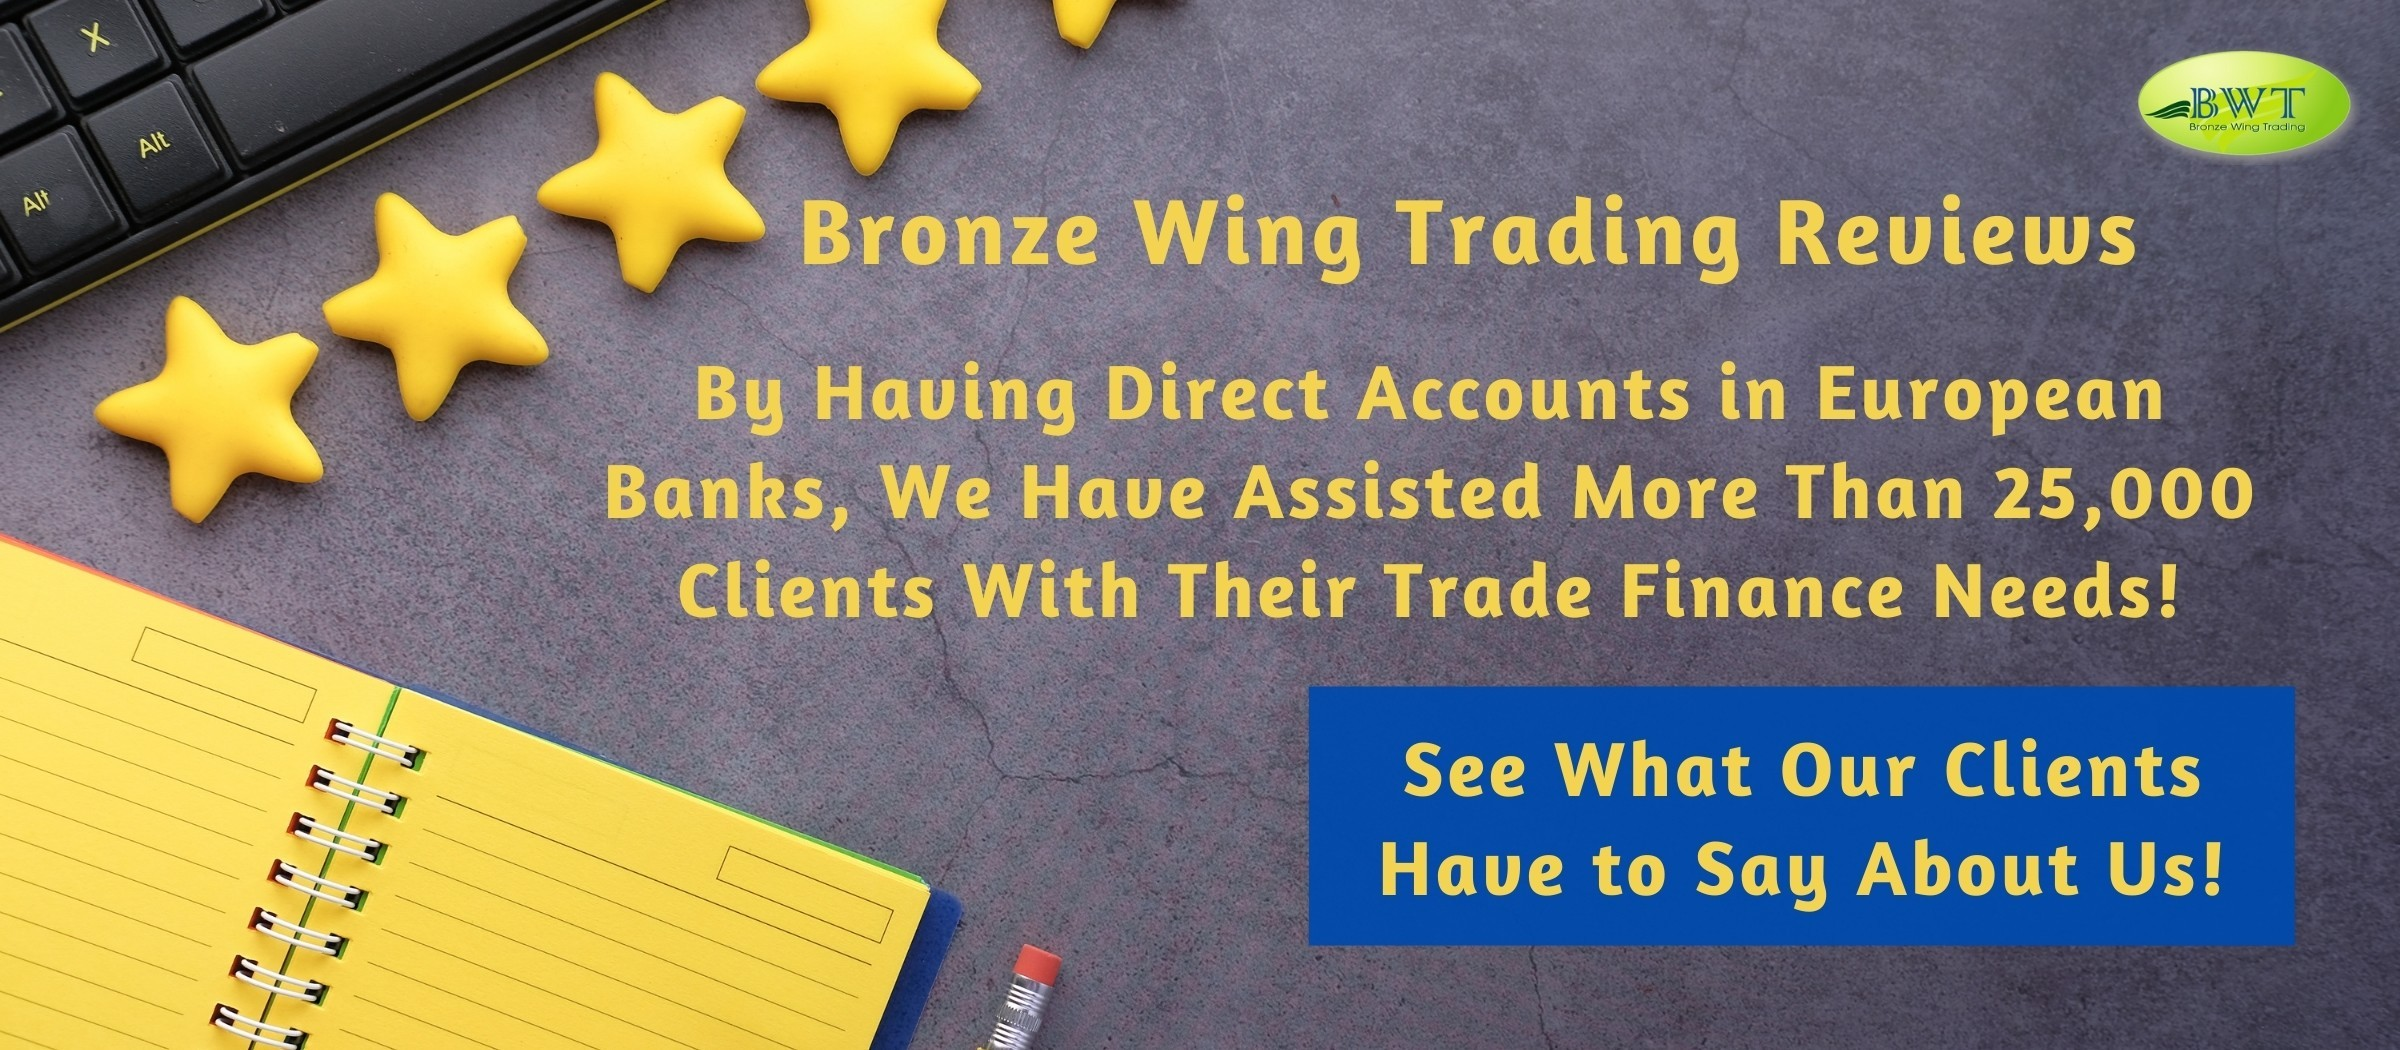 Infographic on Bronze Wing Trading's Happy Clients Reviews